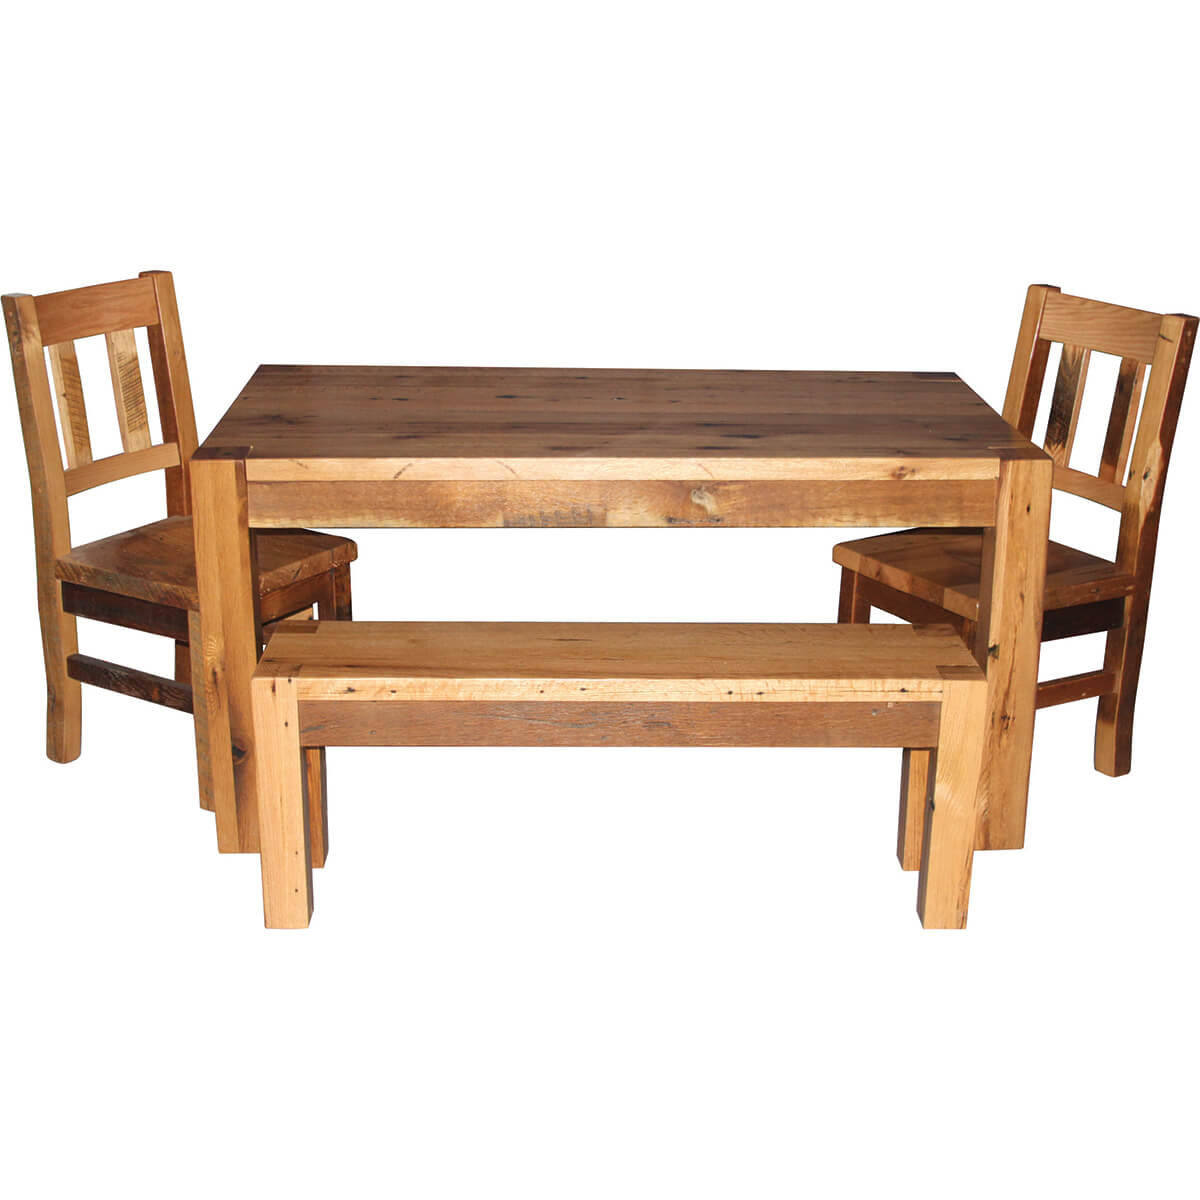 Timber Ridge Table with Bench and Side Chairs